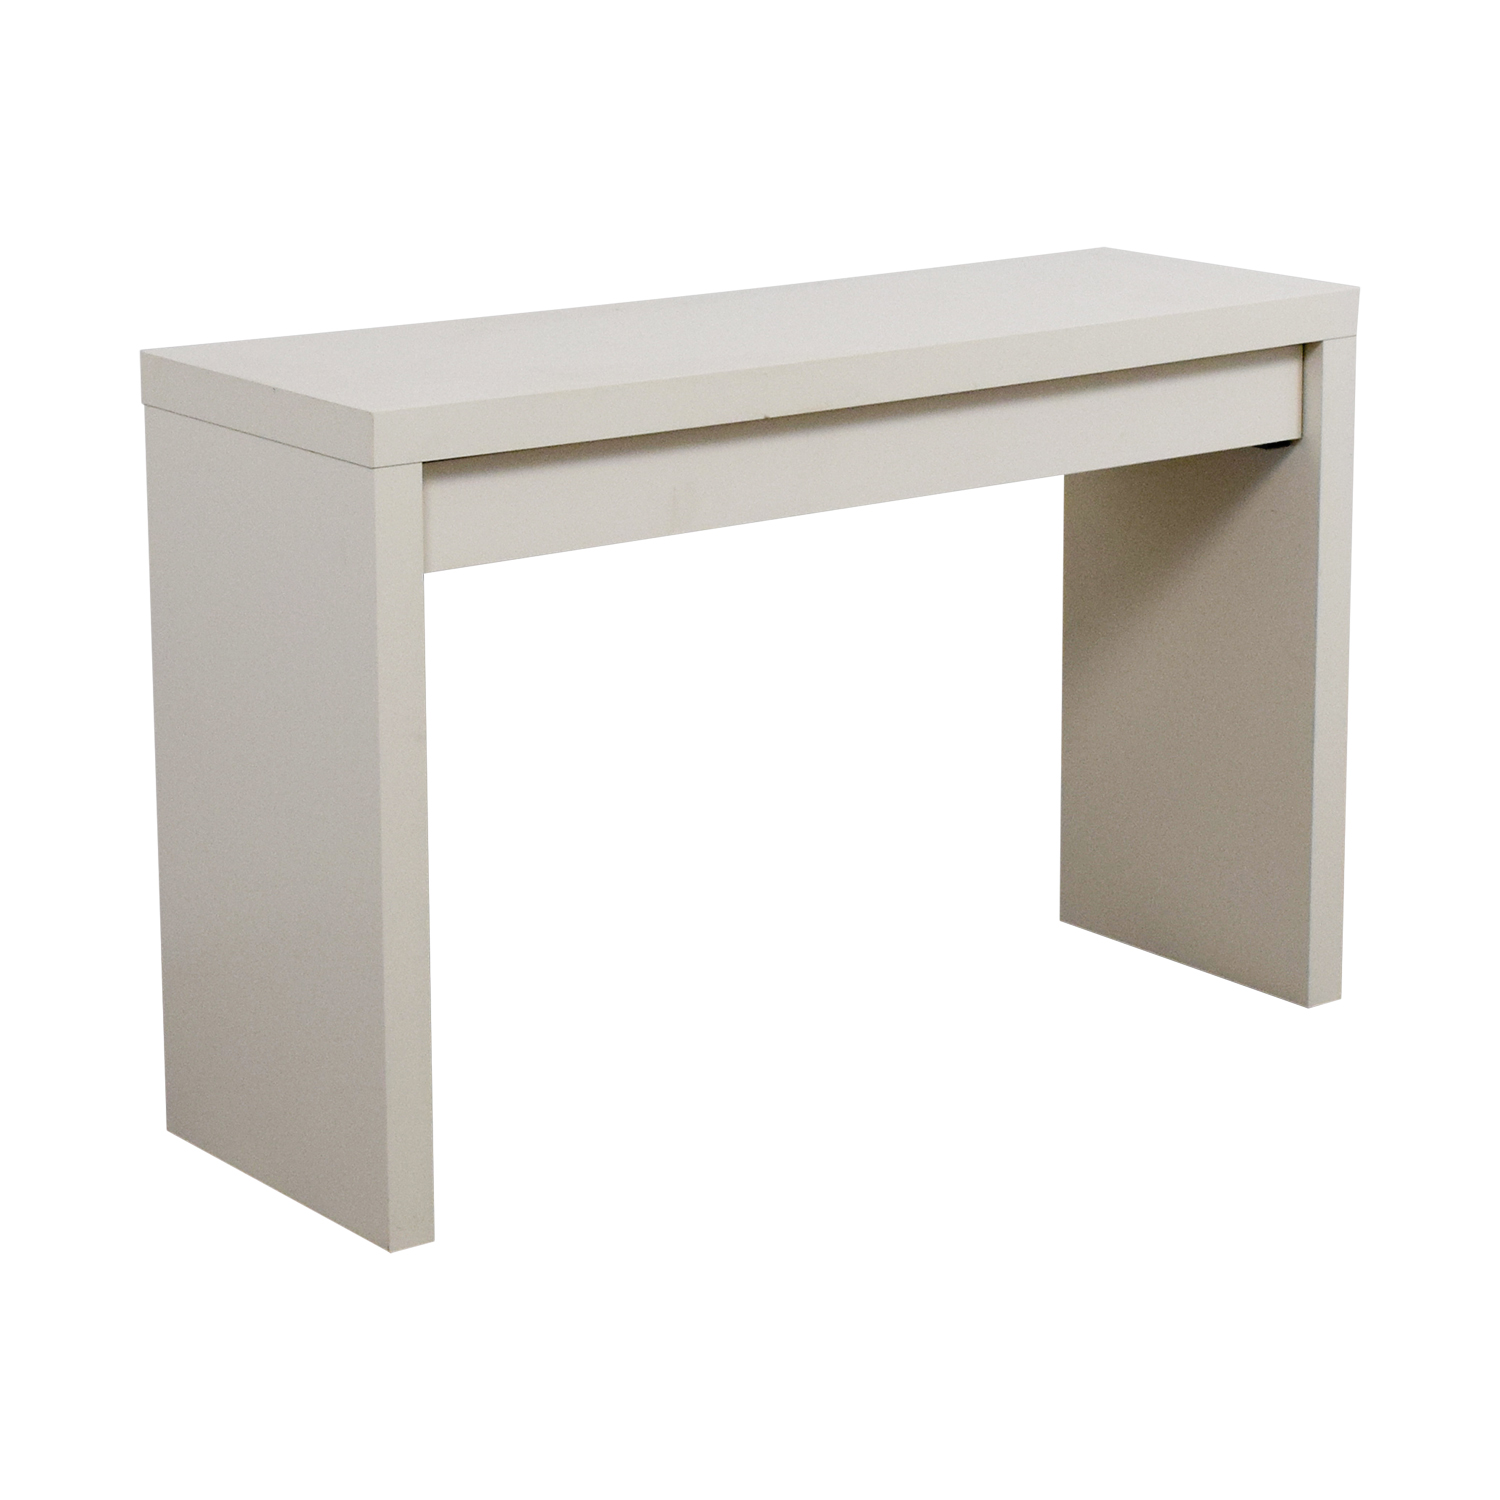 54 off ikea ikea malm white single drawer narrow desk or table tables. Black Bedroom Furniture Sets. Home Design Ideas